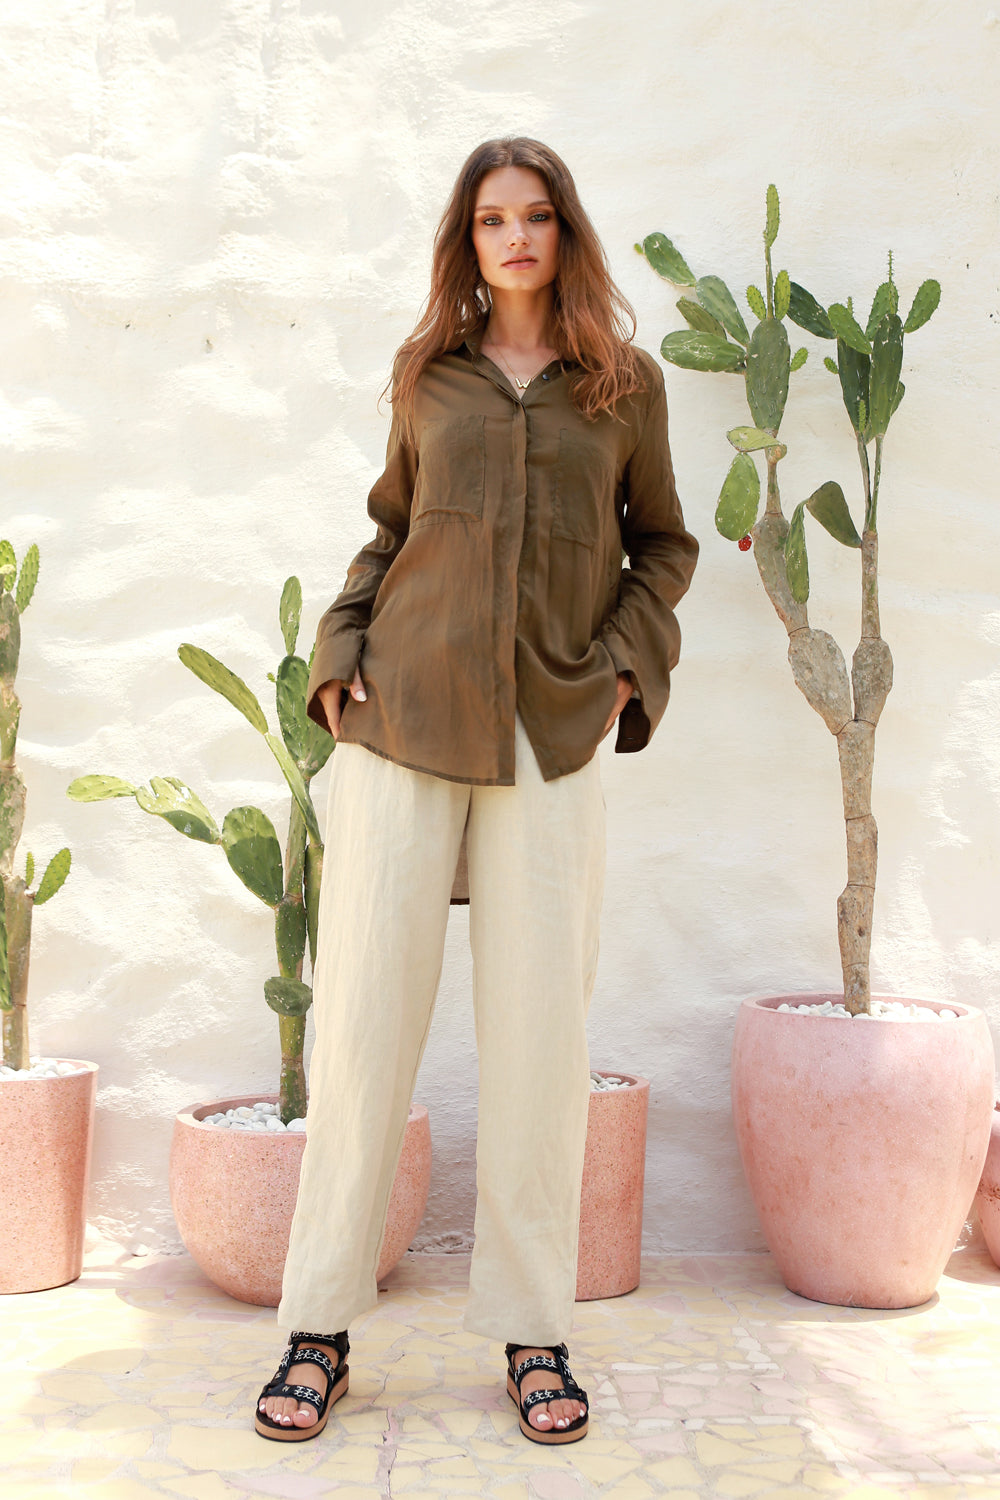 La Confection - Iva - Pant in Bircher Linen